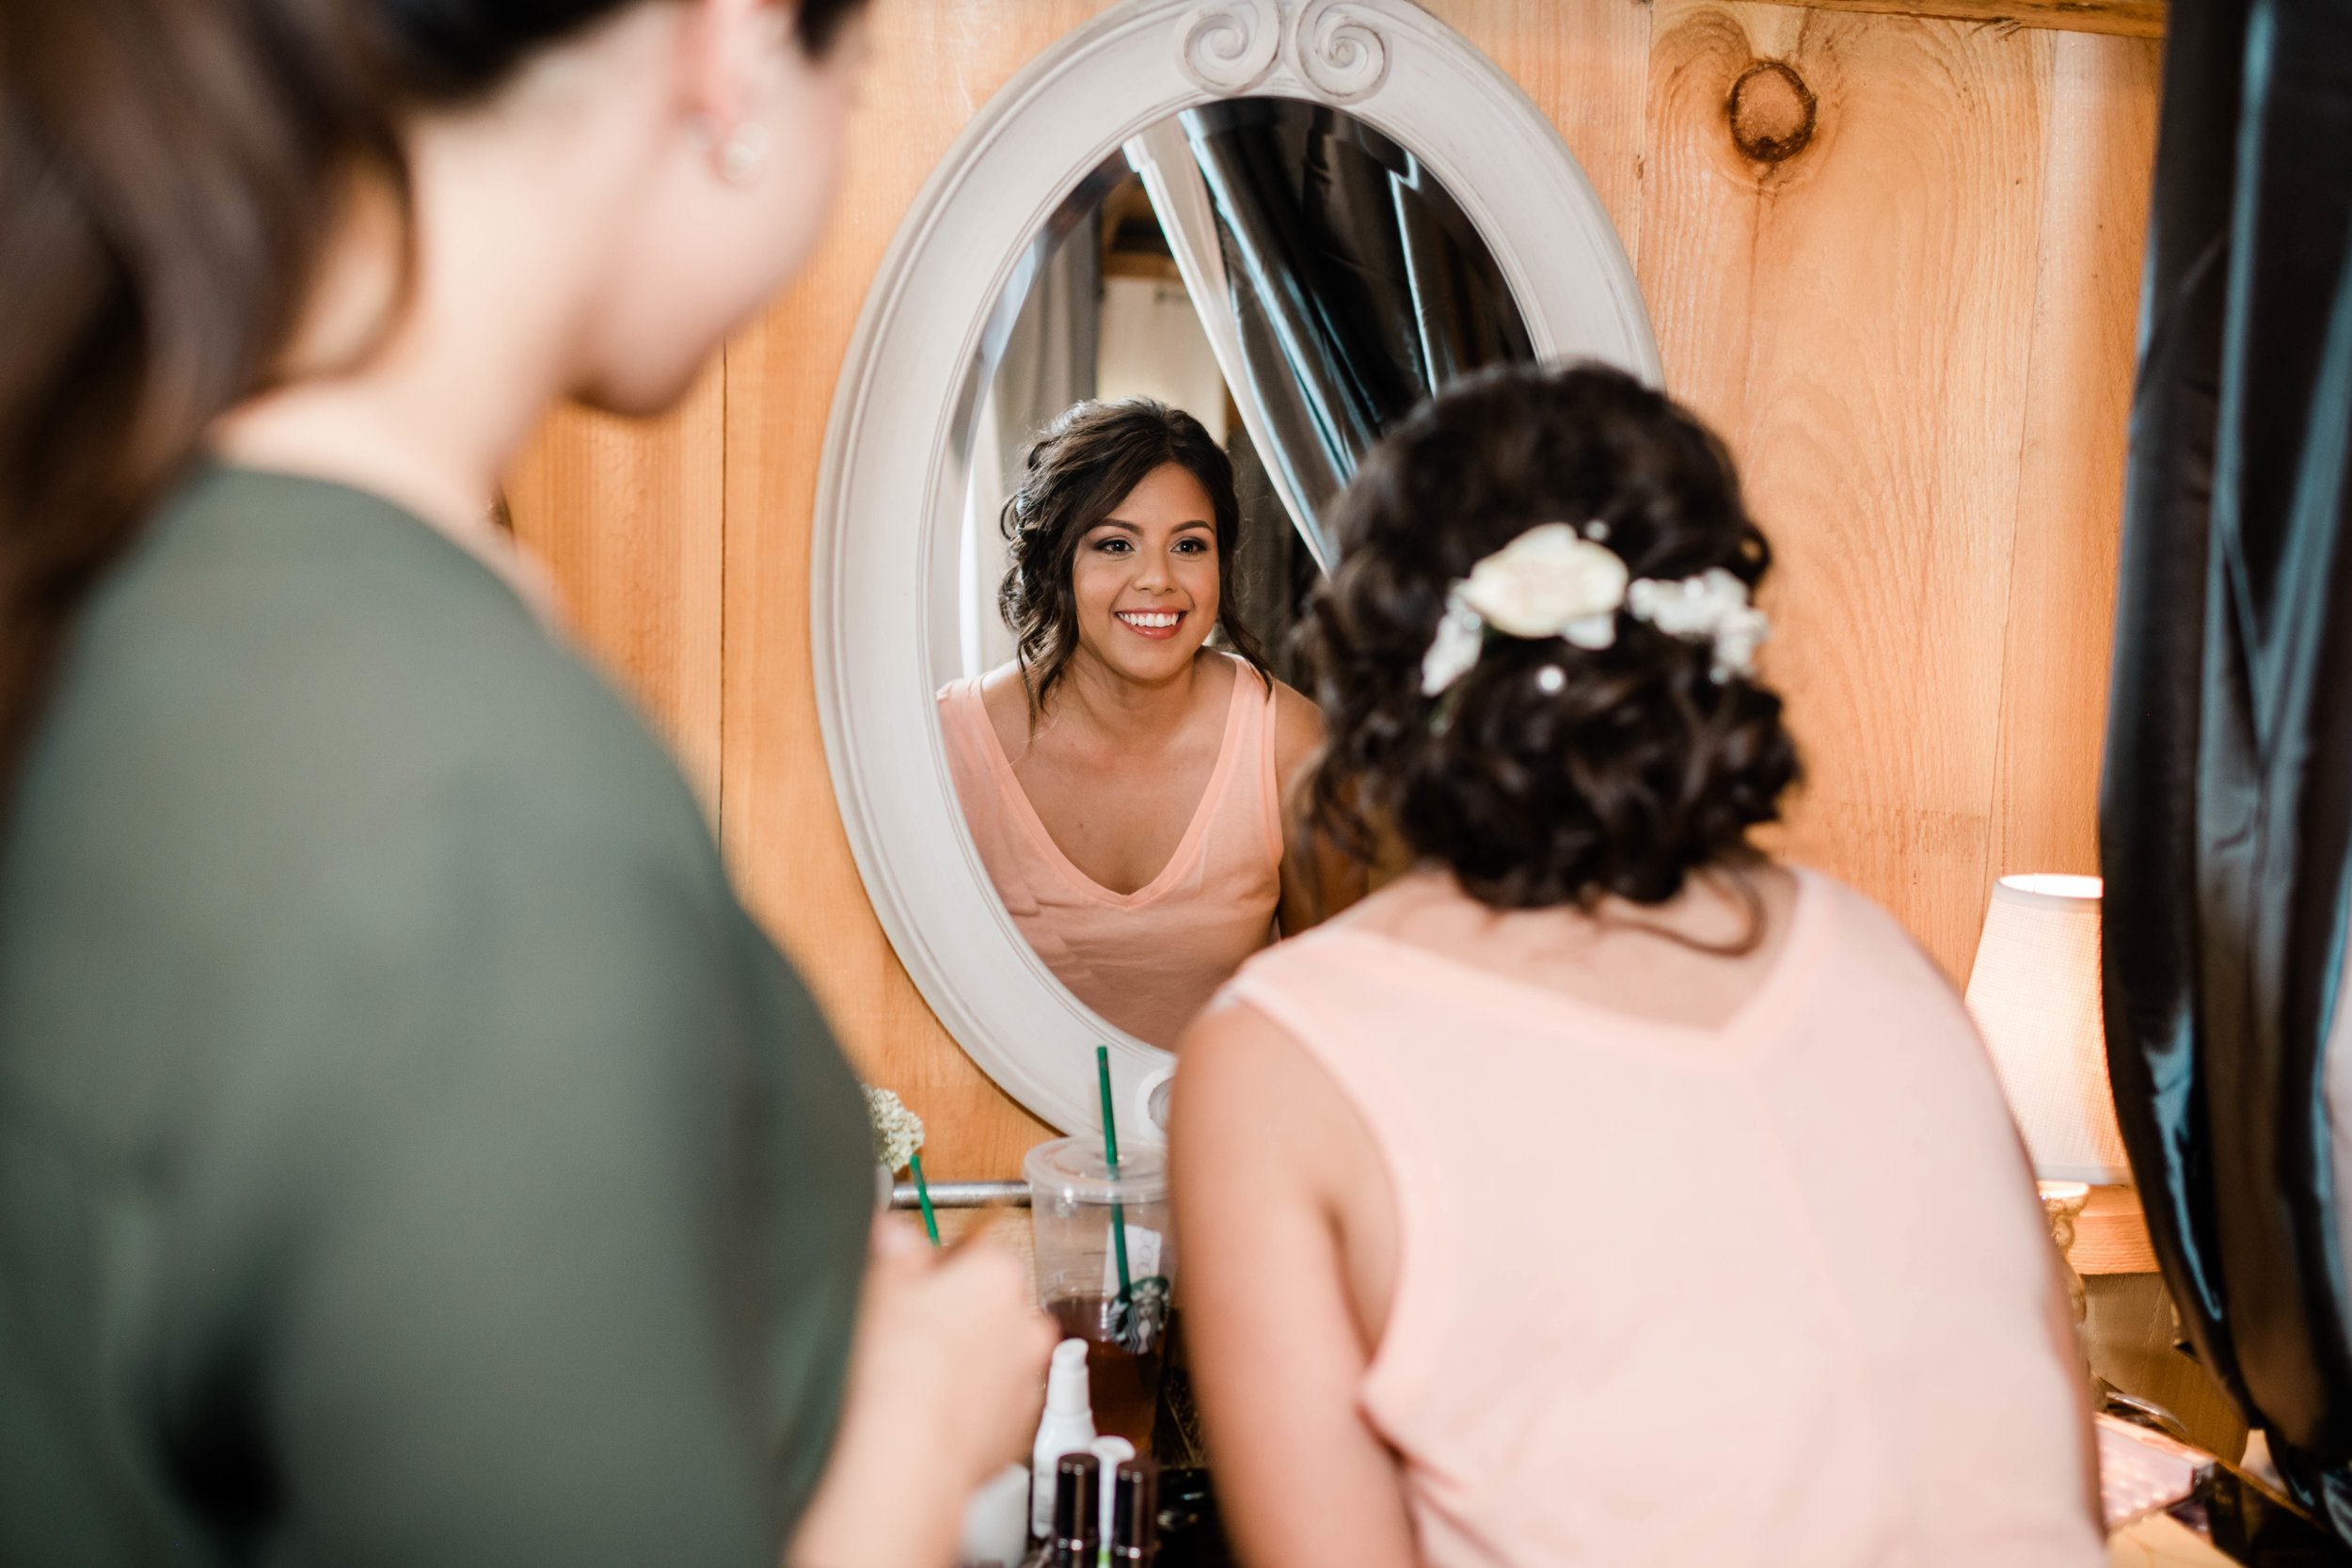 Bride looks happily in the mirror at her wedding day hair and makeup